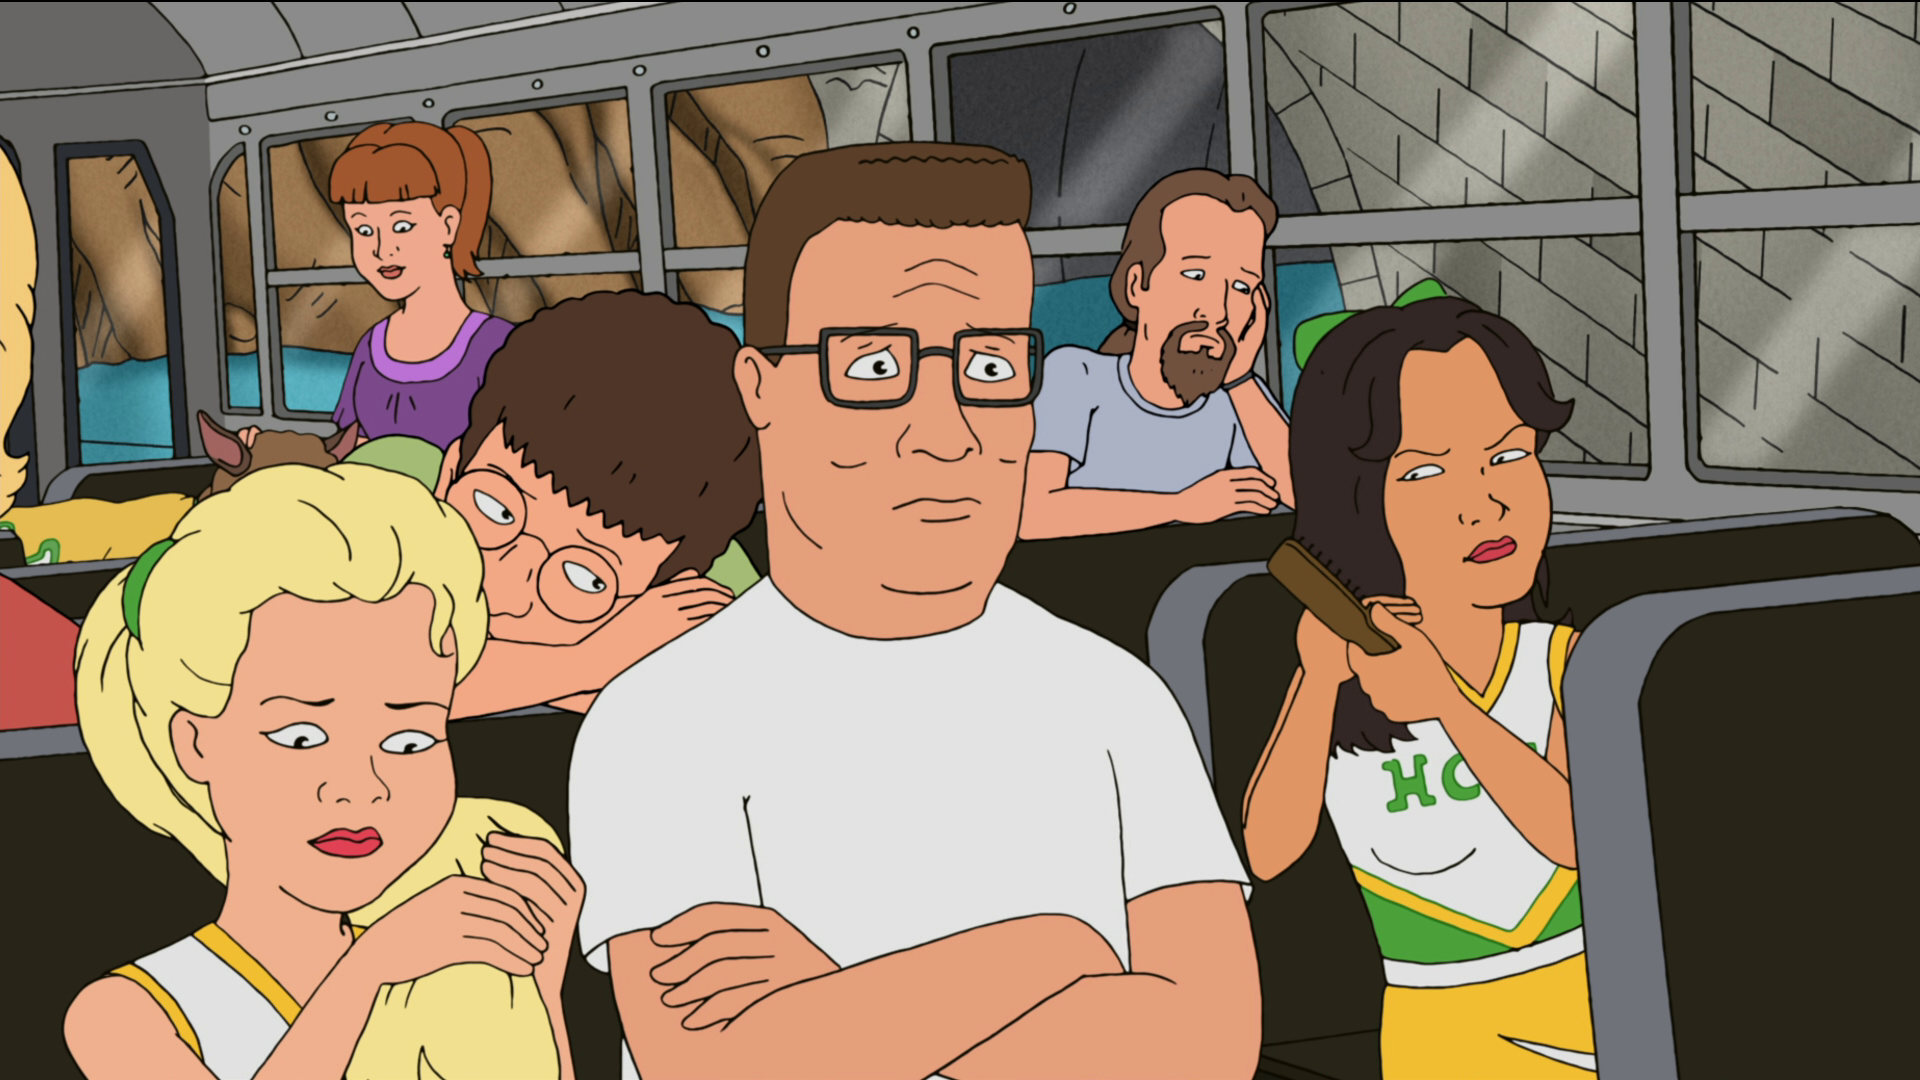 King of the Hill S13E24 BluRay REMUX 1080p AVC DTS-HD MA 5.1 - KRaLiMaRKo